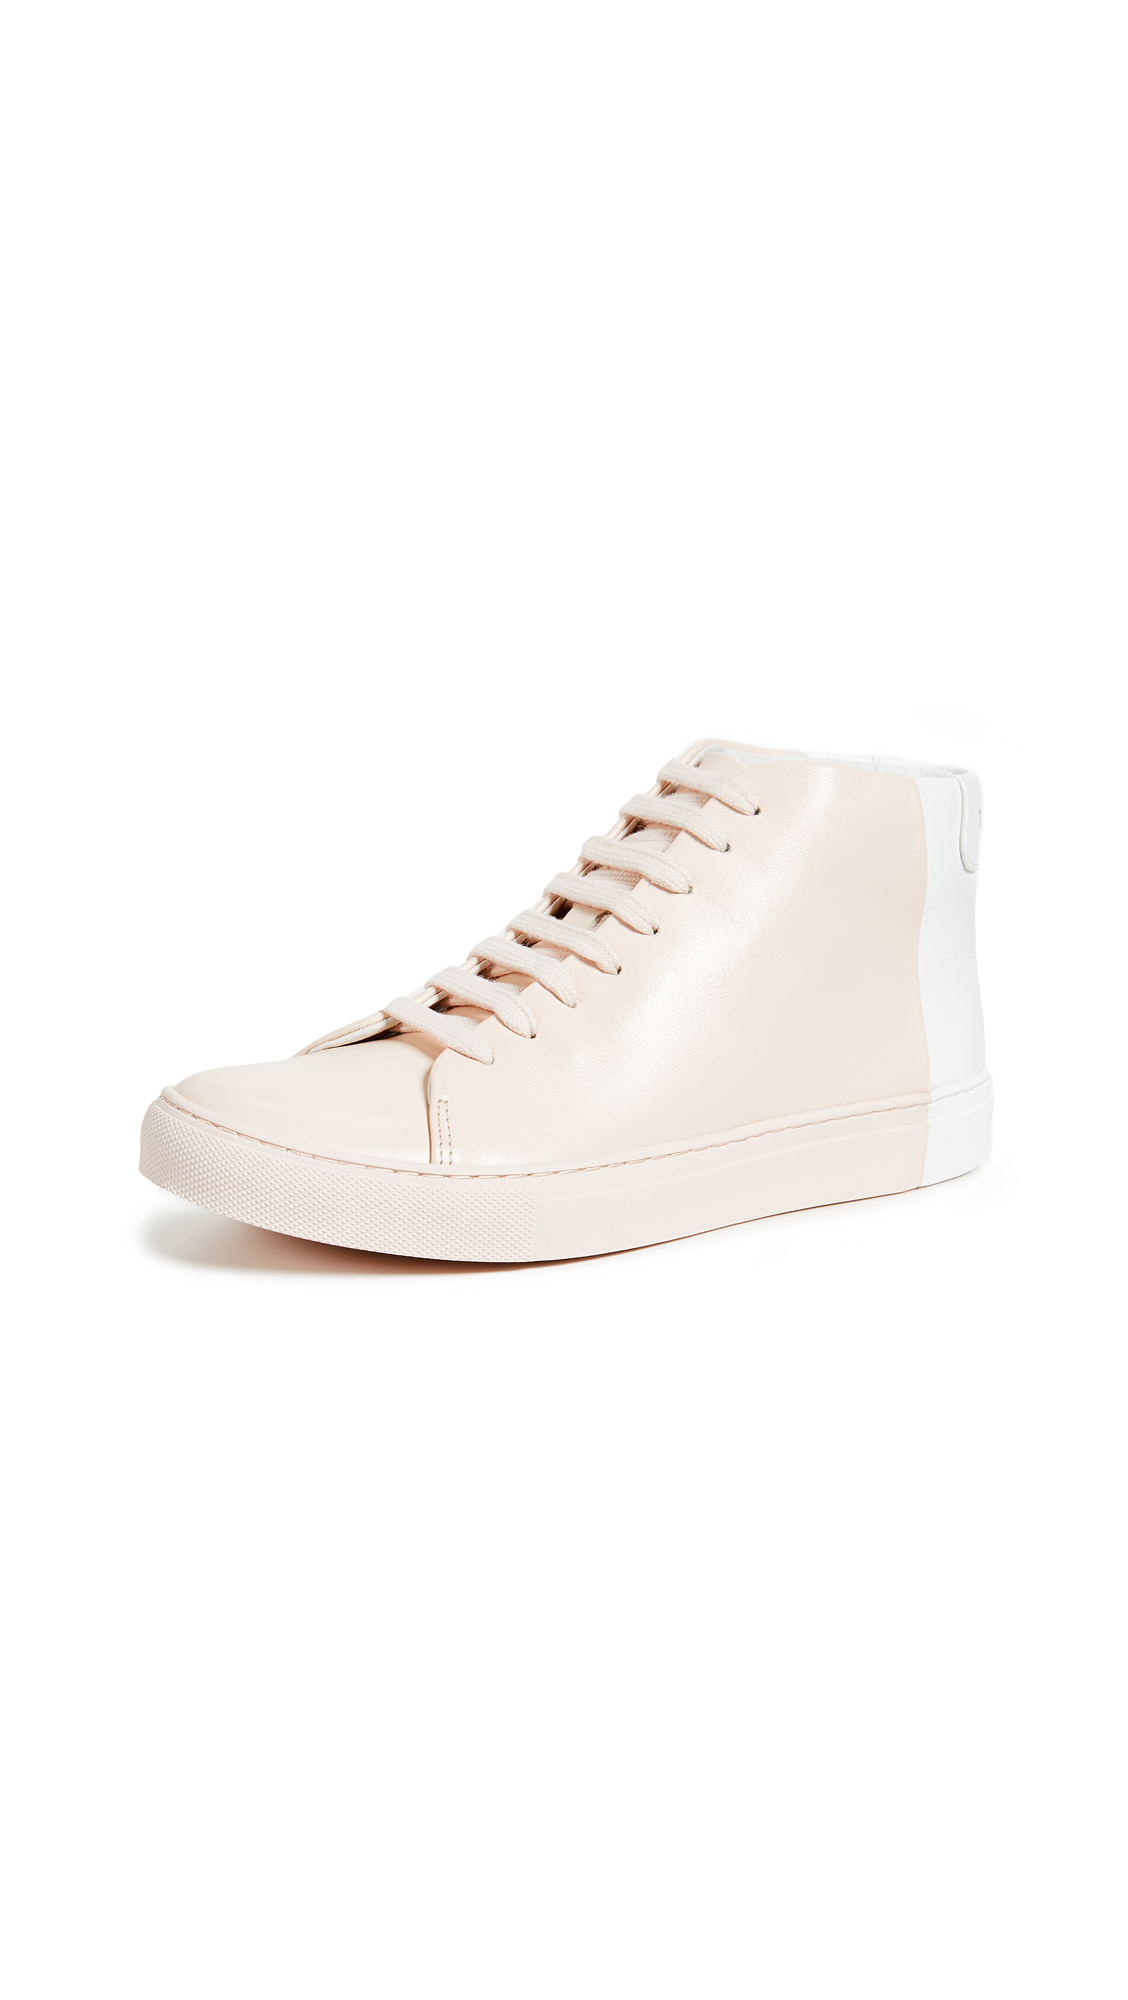 THEY NEW YORK Two Tone Mid Sneakers - Blush/White